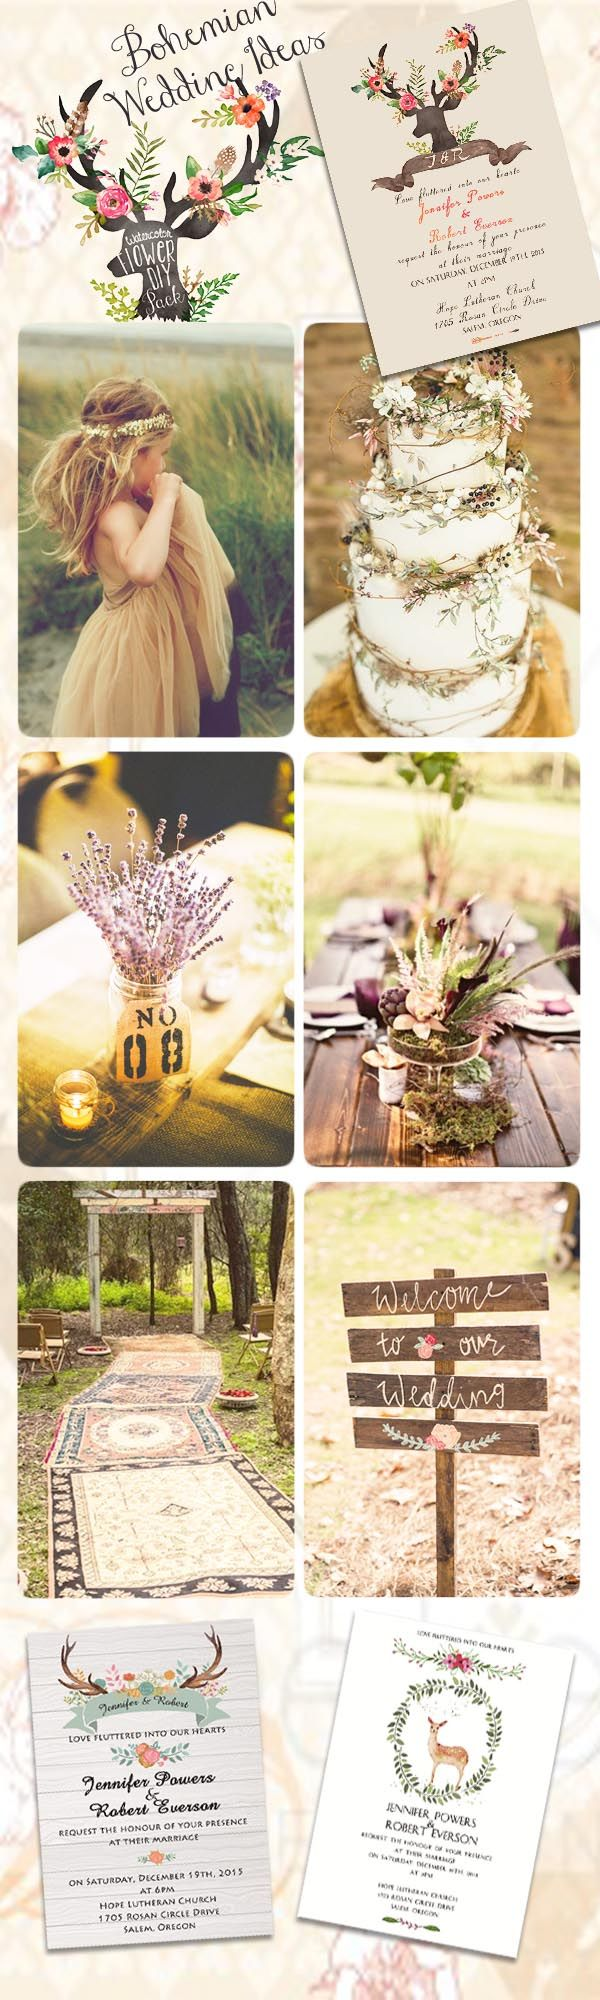 bohemian wedding ideas and rustic bohemian wedding invitation